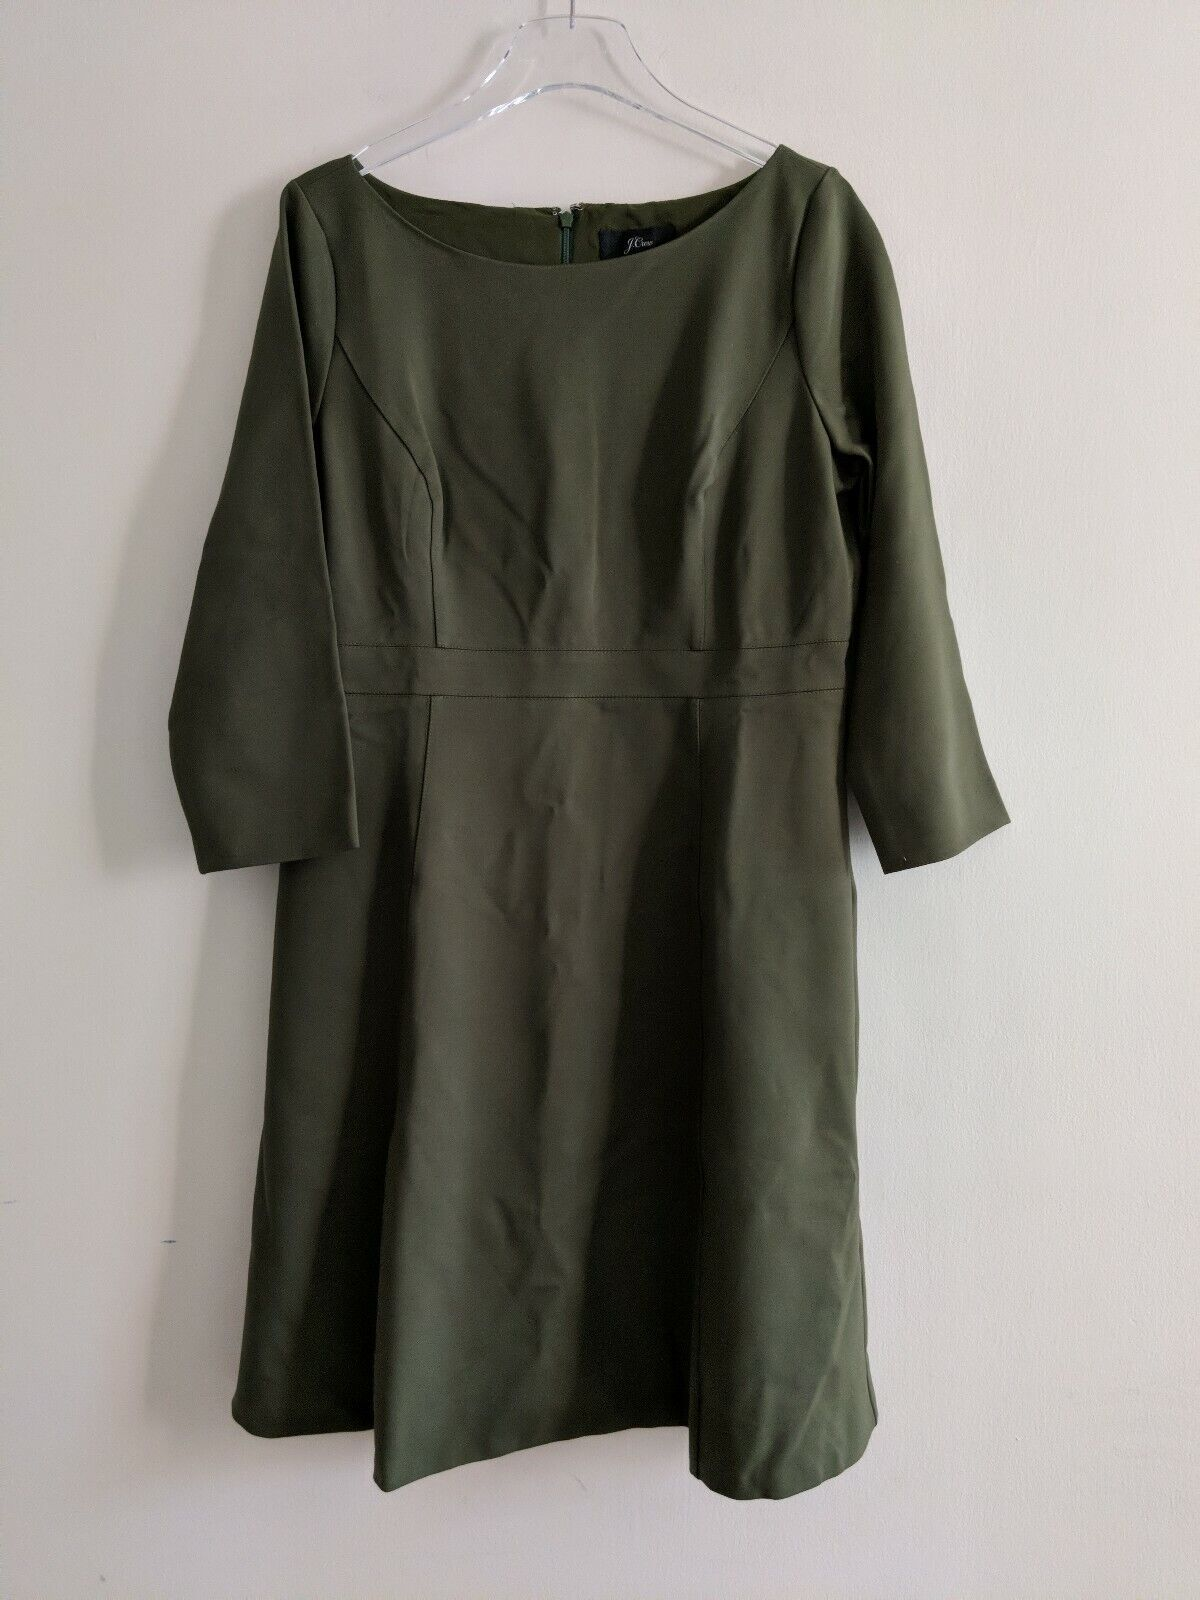 J CREW Fit and Flare Ponte Knit Dress Sz 14 Green career H9330 NWT  128